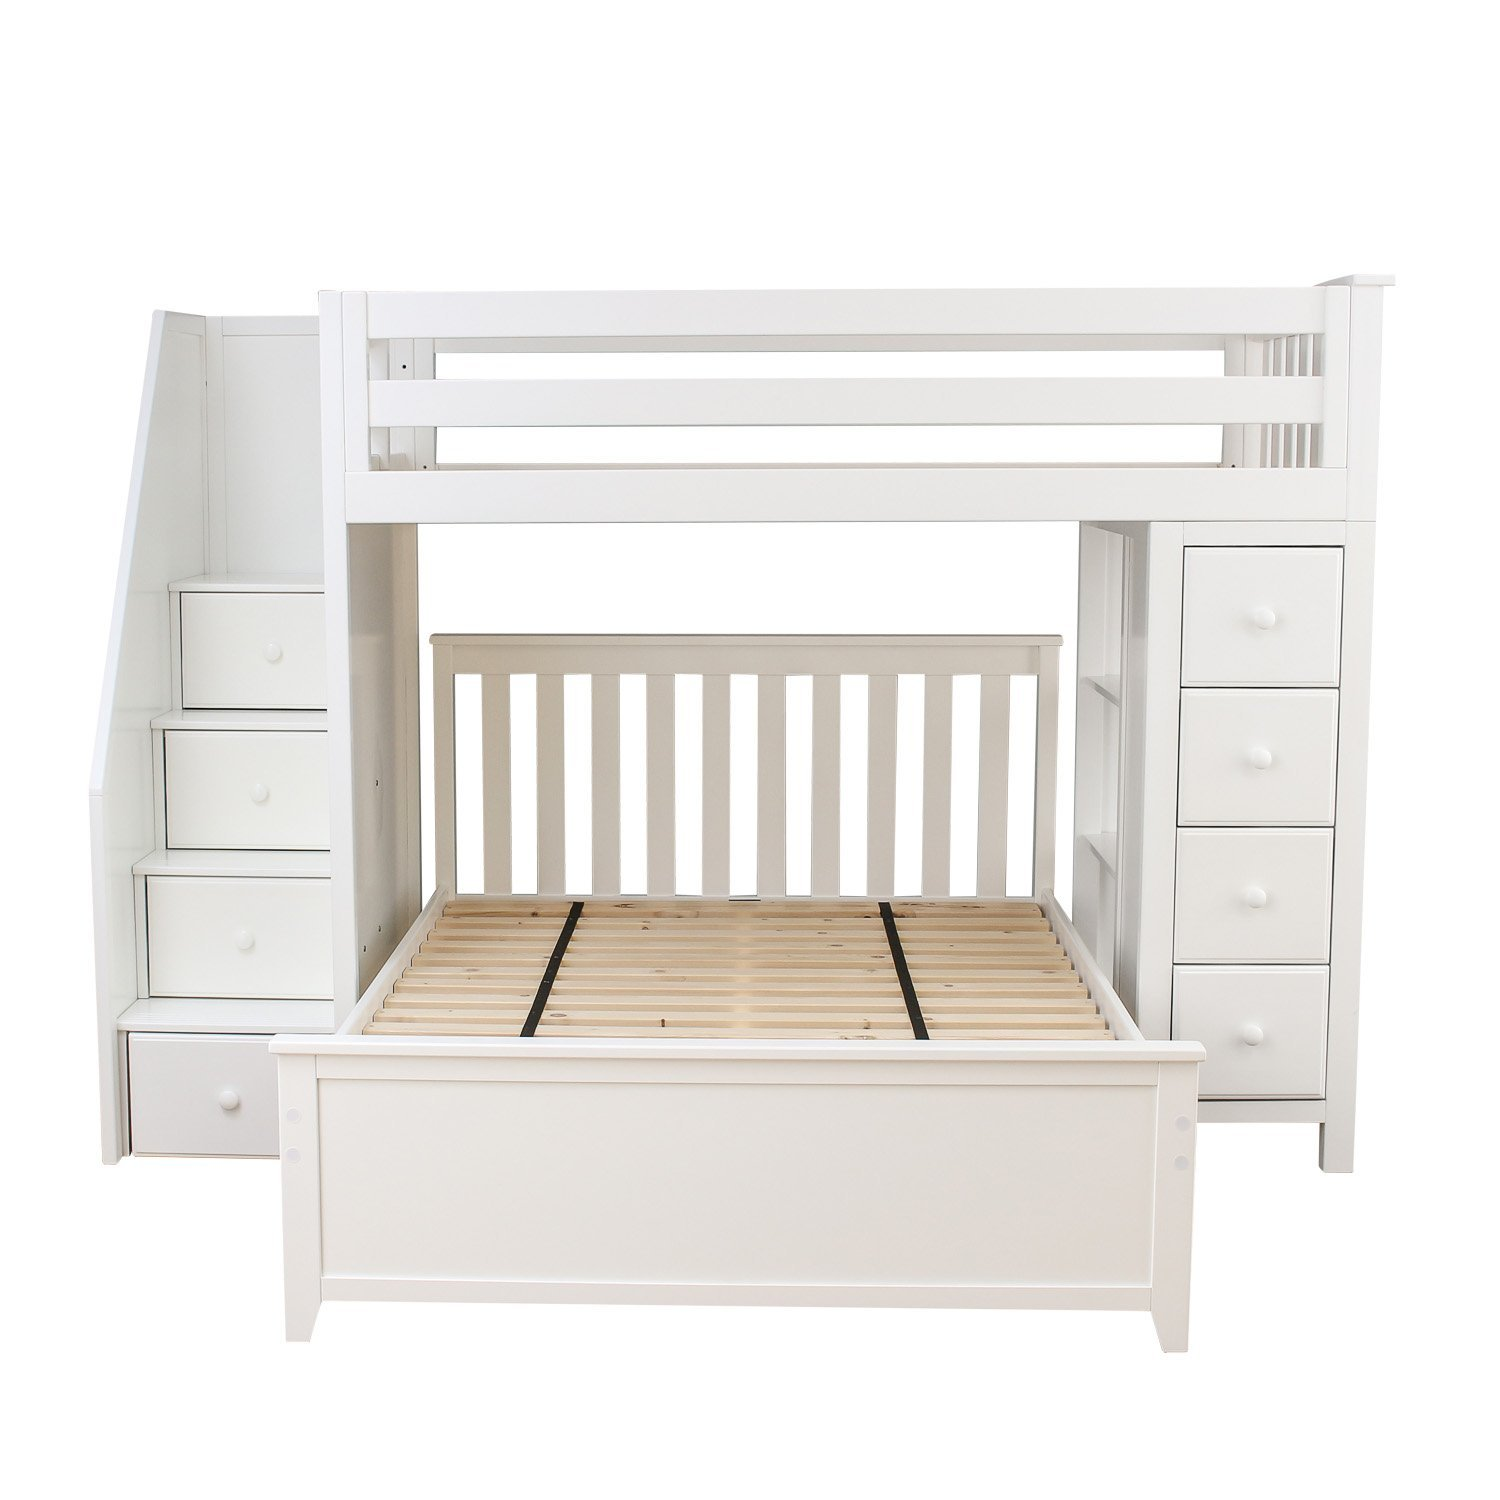 Jackpot! Deluxe All-in-One Solid Hardwood Twin-Size Storage Loft Bed with Staircase over Full-Size Bed, White